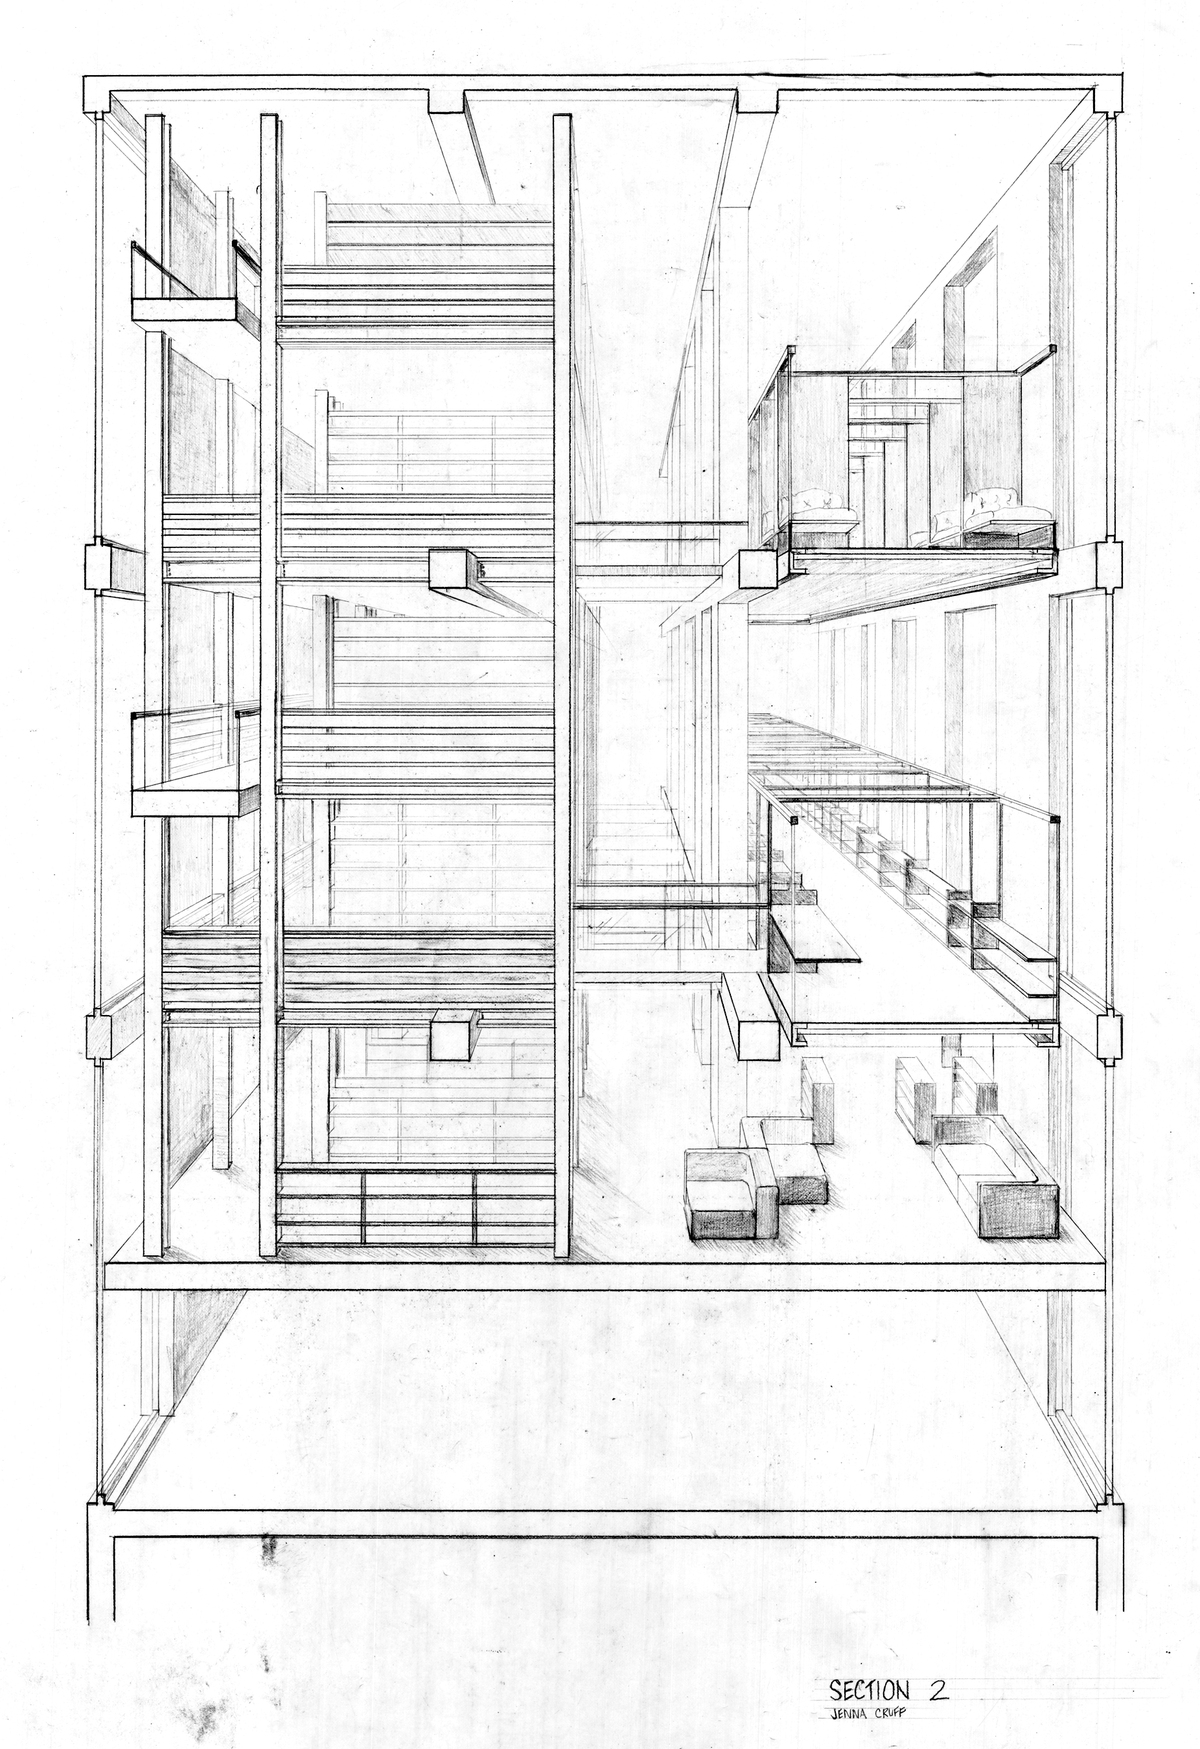 Section Perspective 2